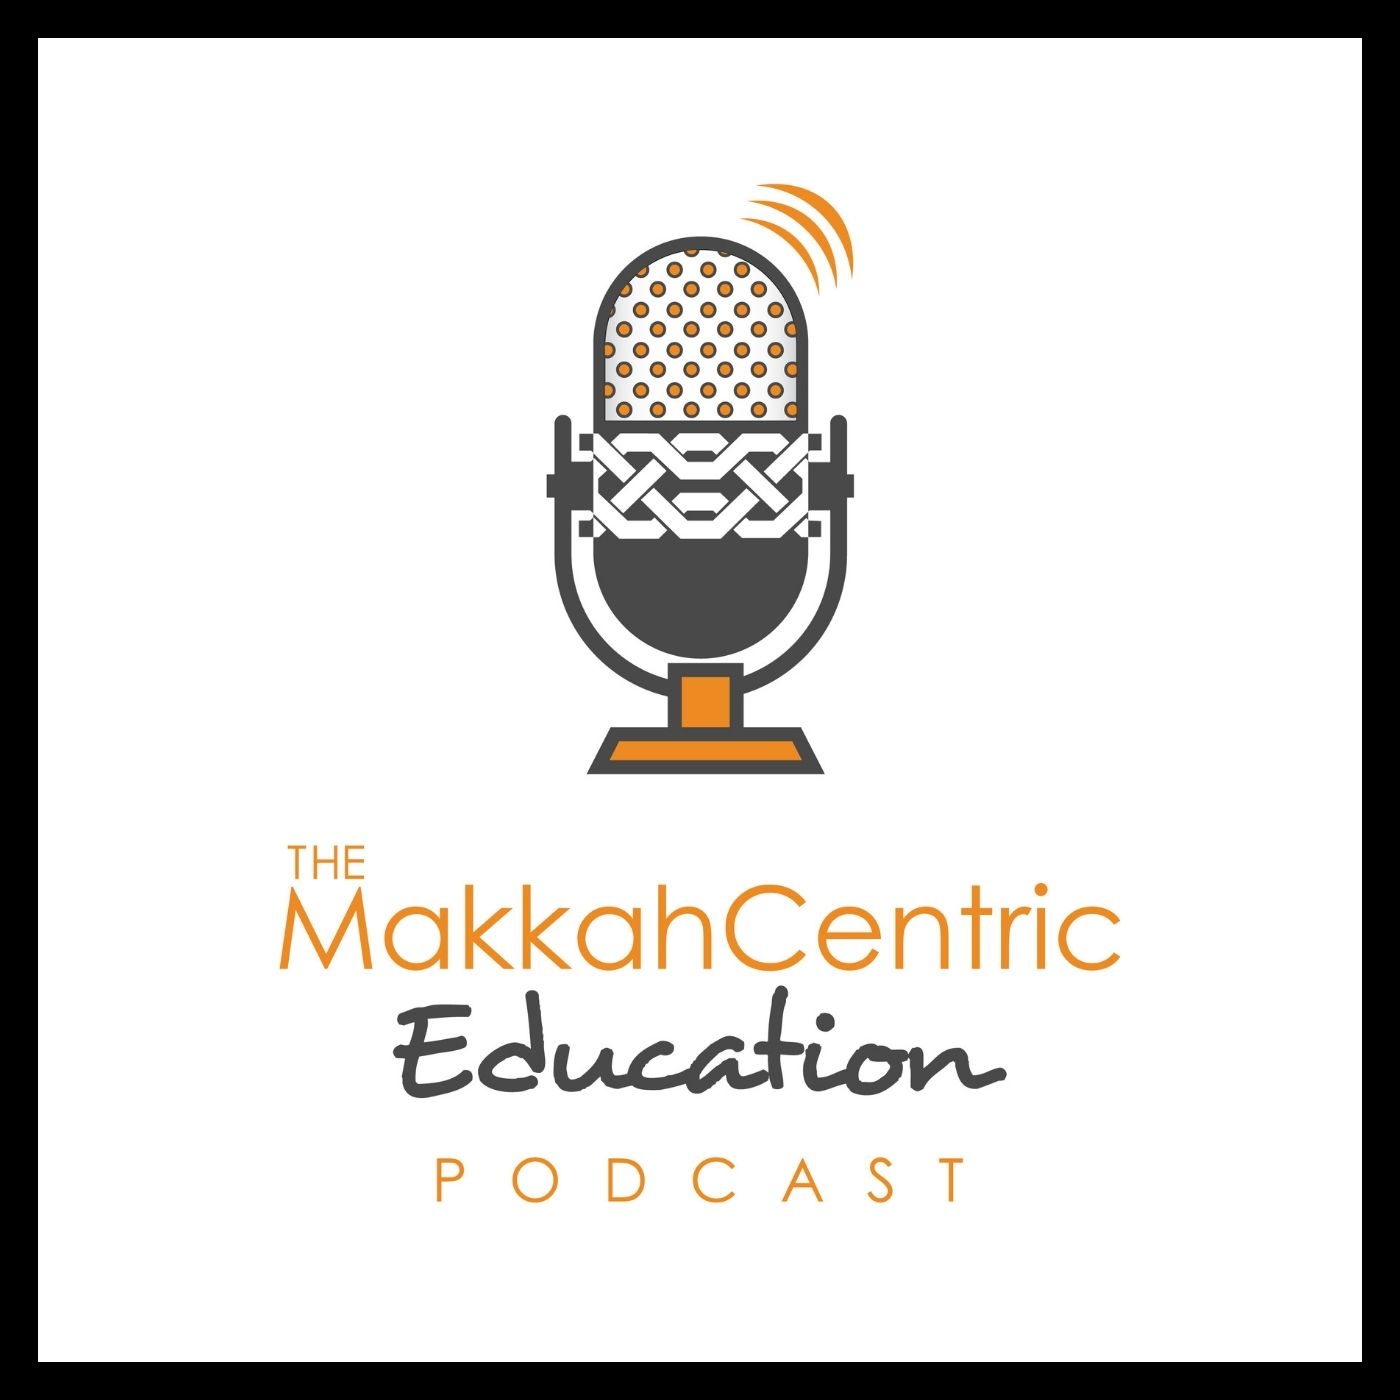 MCEP 001: Introducing the MakkahCentric Education Podcast